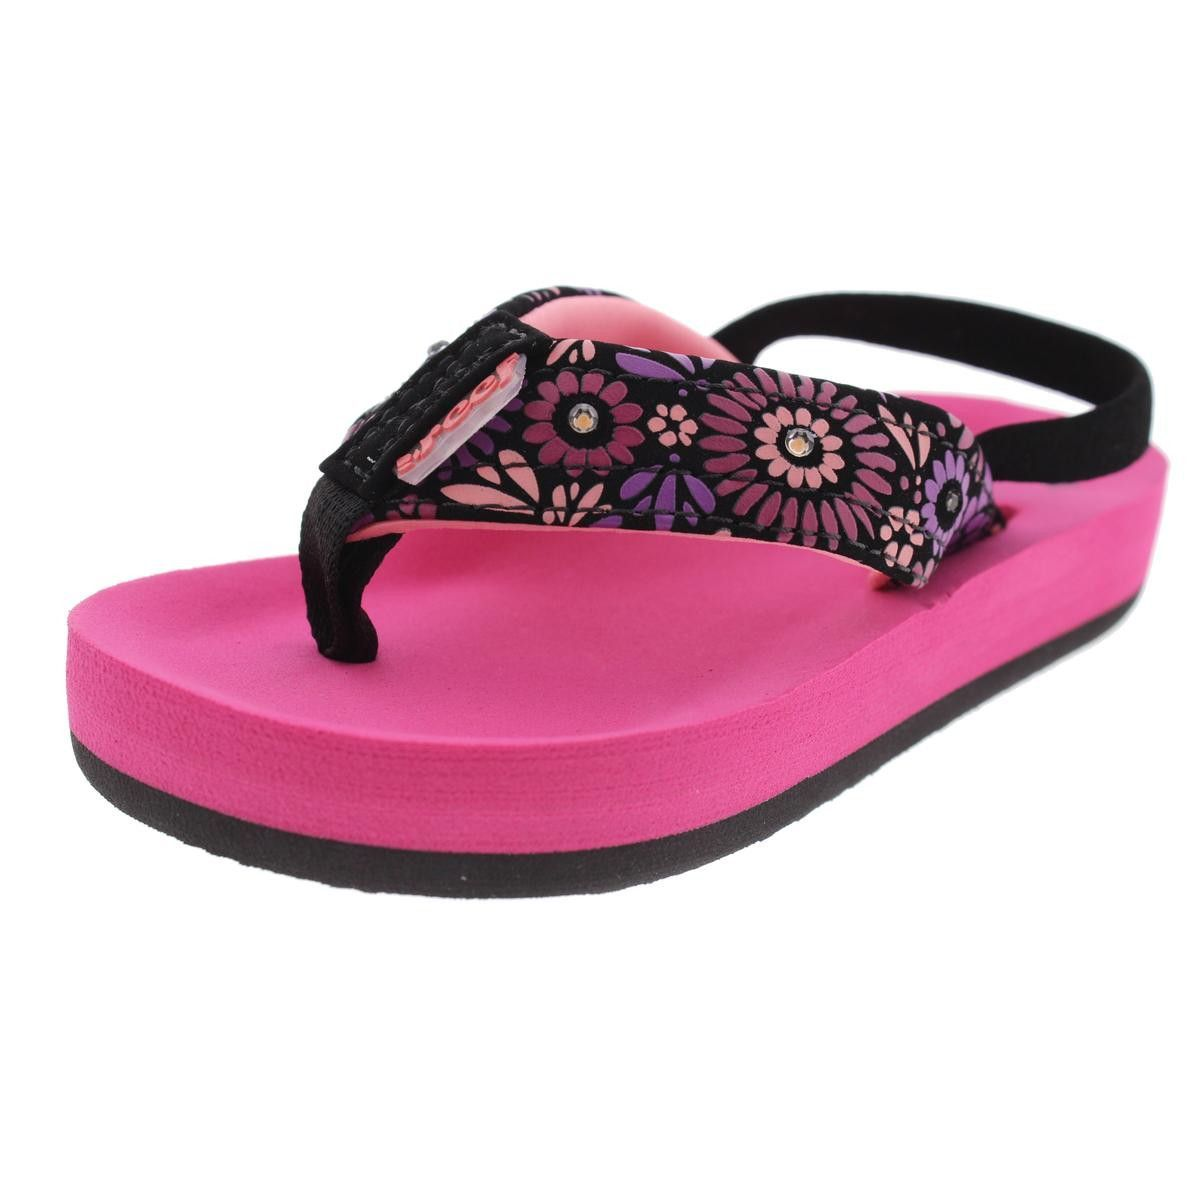 887d3af3c Reef Girls Little Ahi Toddler Light Up Flip-Flops